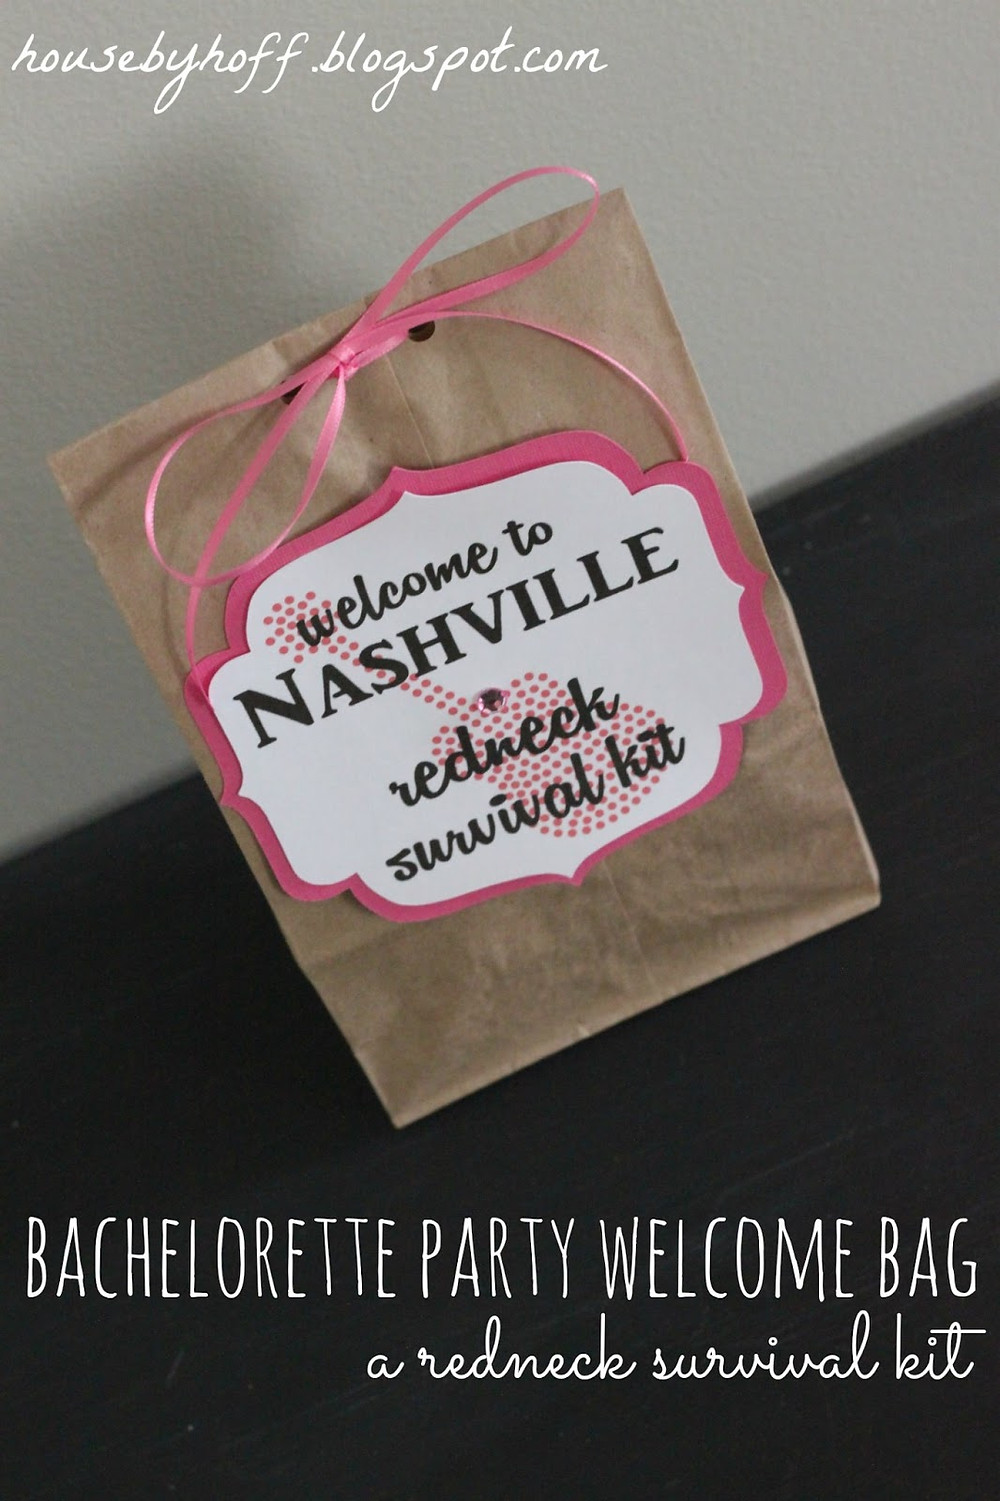 Nashville welcome bag